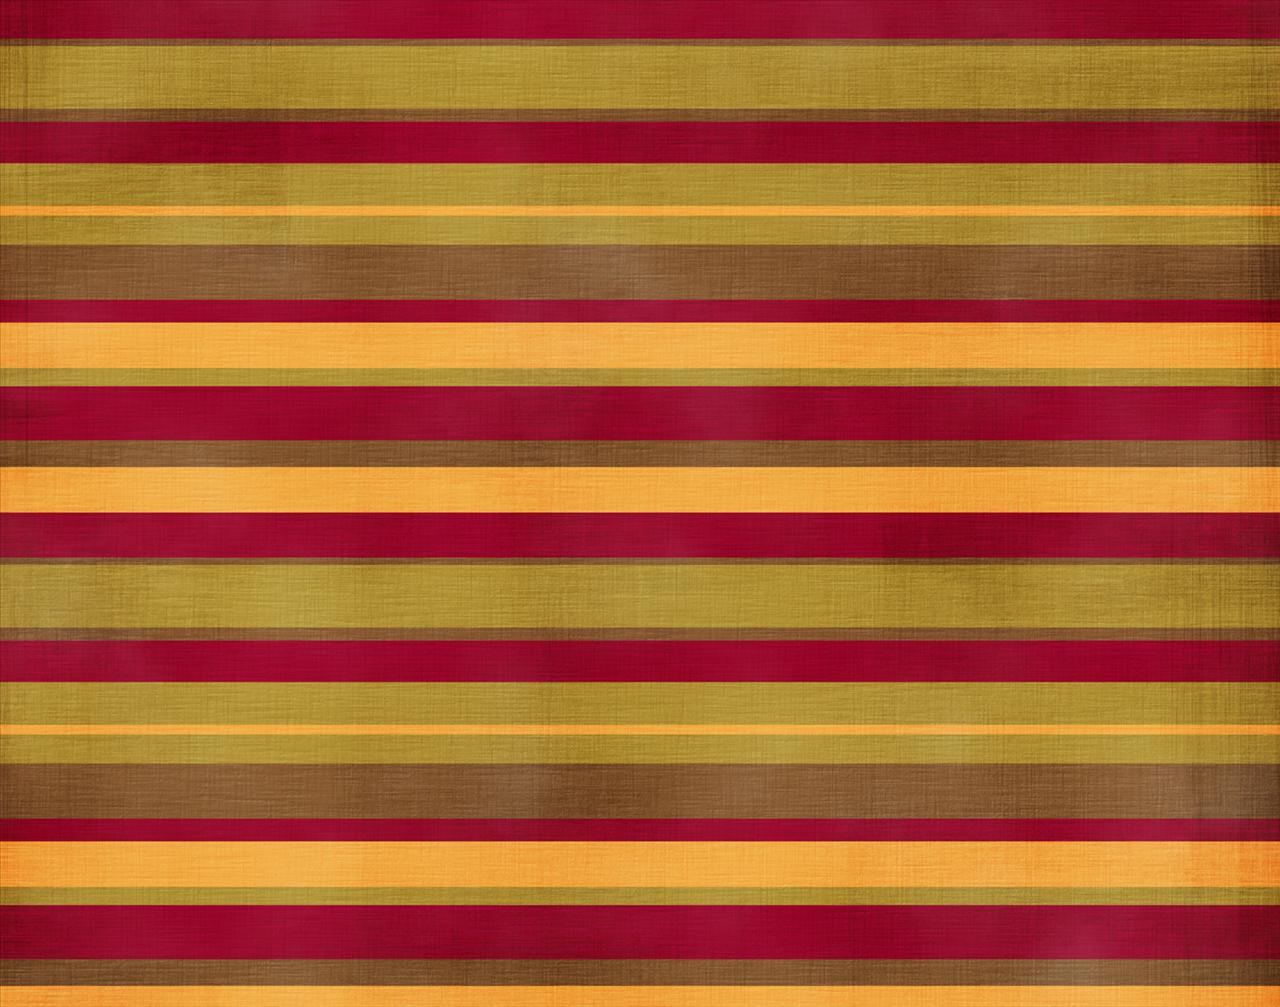 Horizontal Stripes Desktop Wallpaper Use this background in your 1280x1007